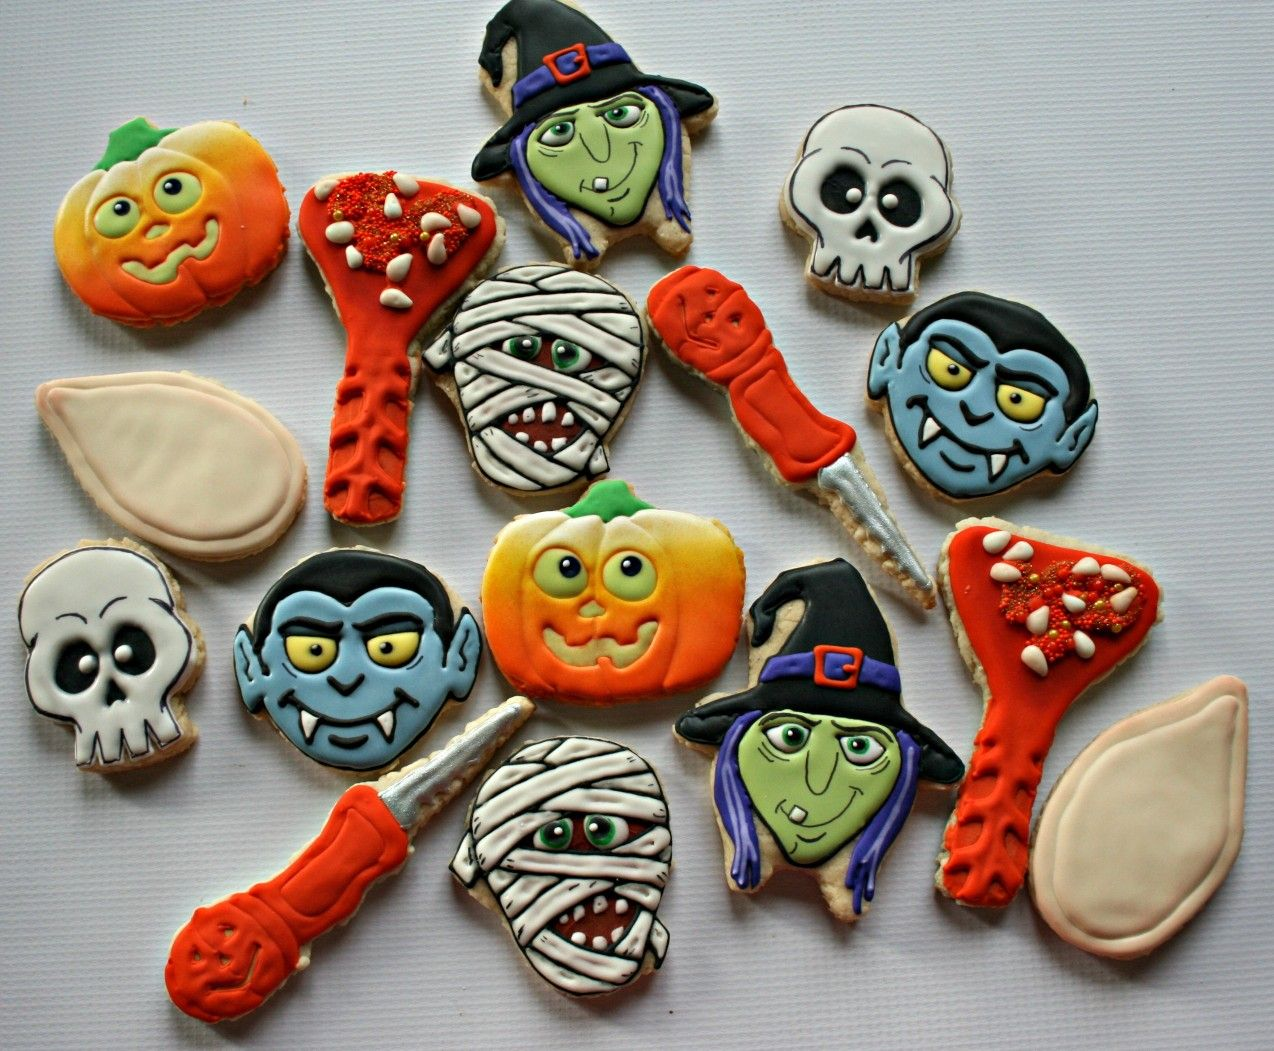 Halloween Decorated Cookies #mamimorcookies Cookies Pinterest - Halloween Decorated Cookies